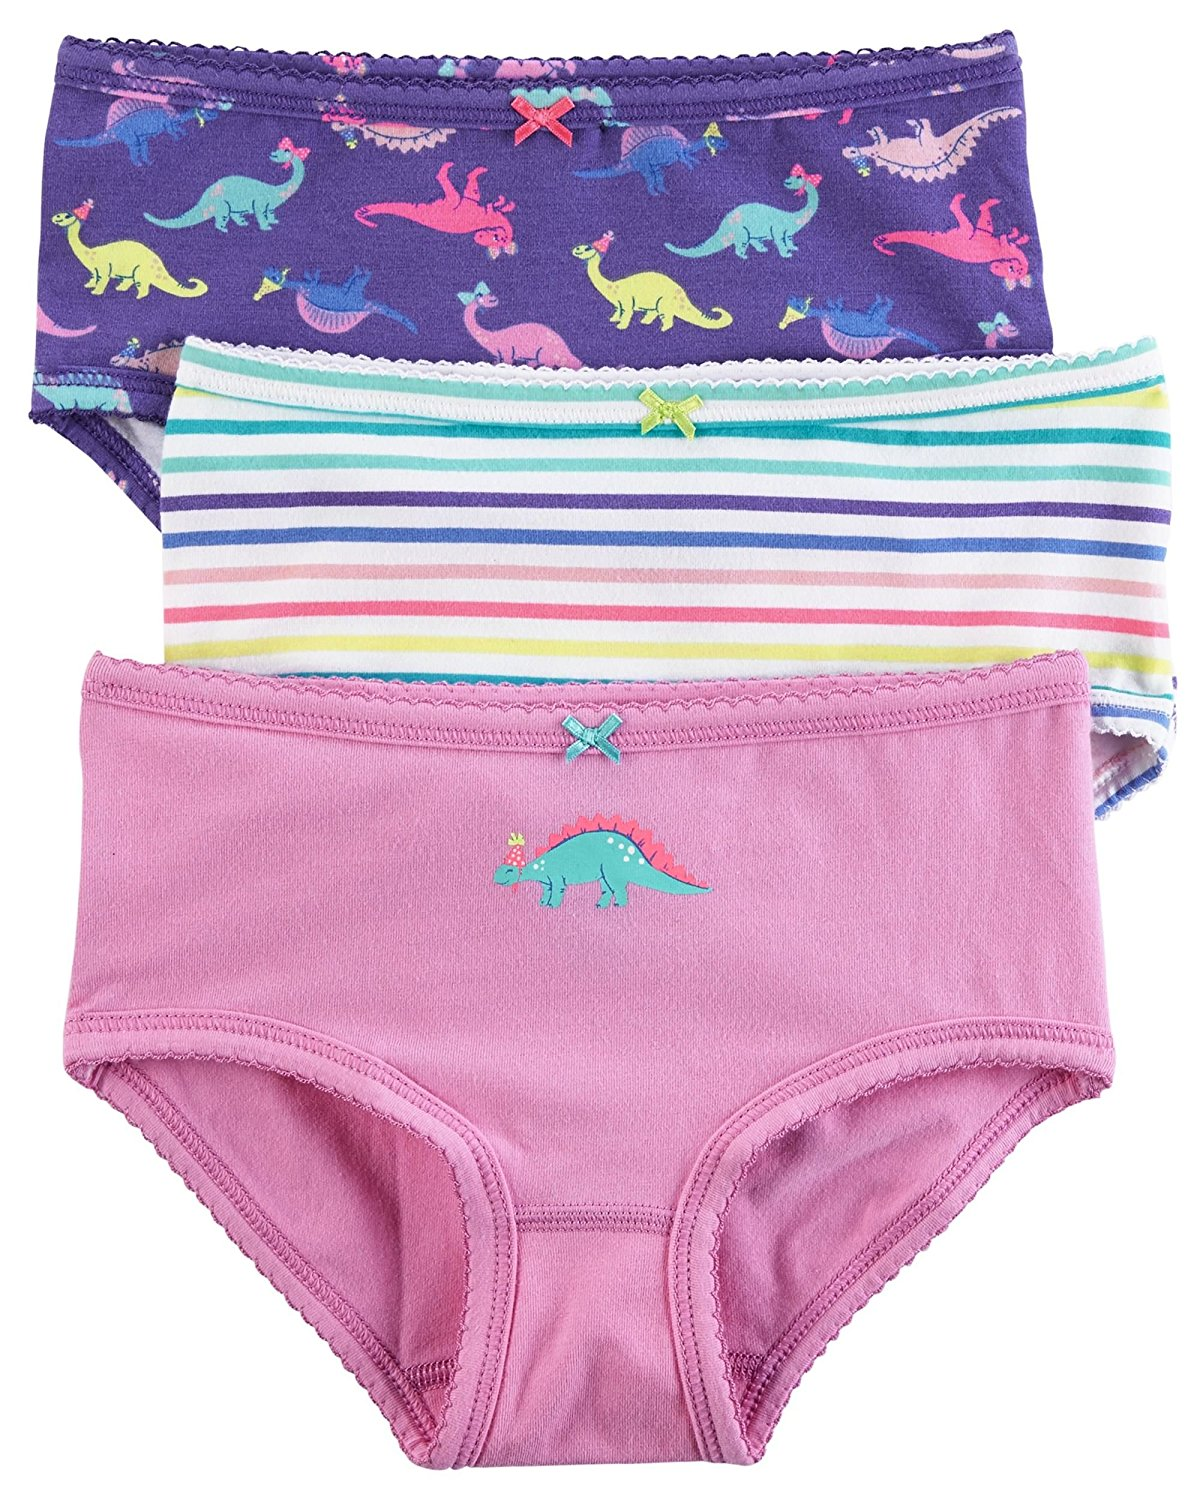 fcb4b3a6a Carter s Little Girls  3 Pack Panties (Toddler Kid) - Geo Prints